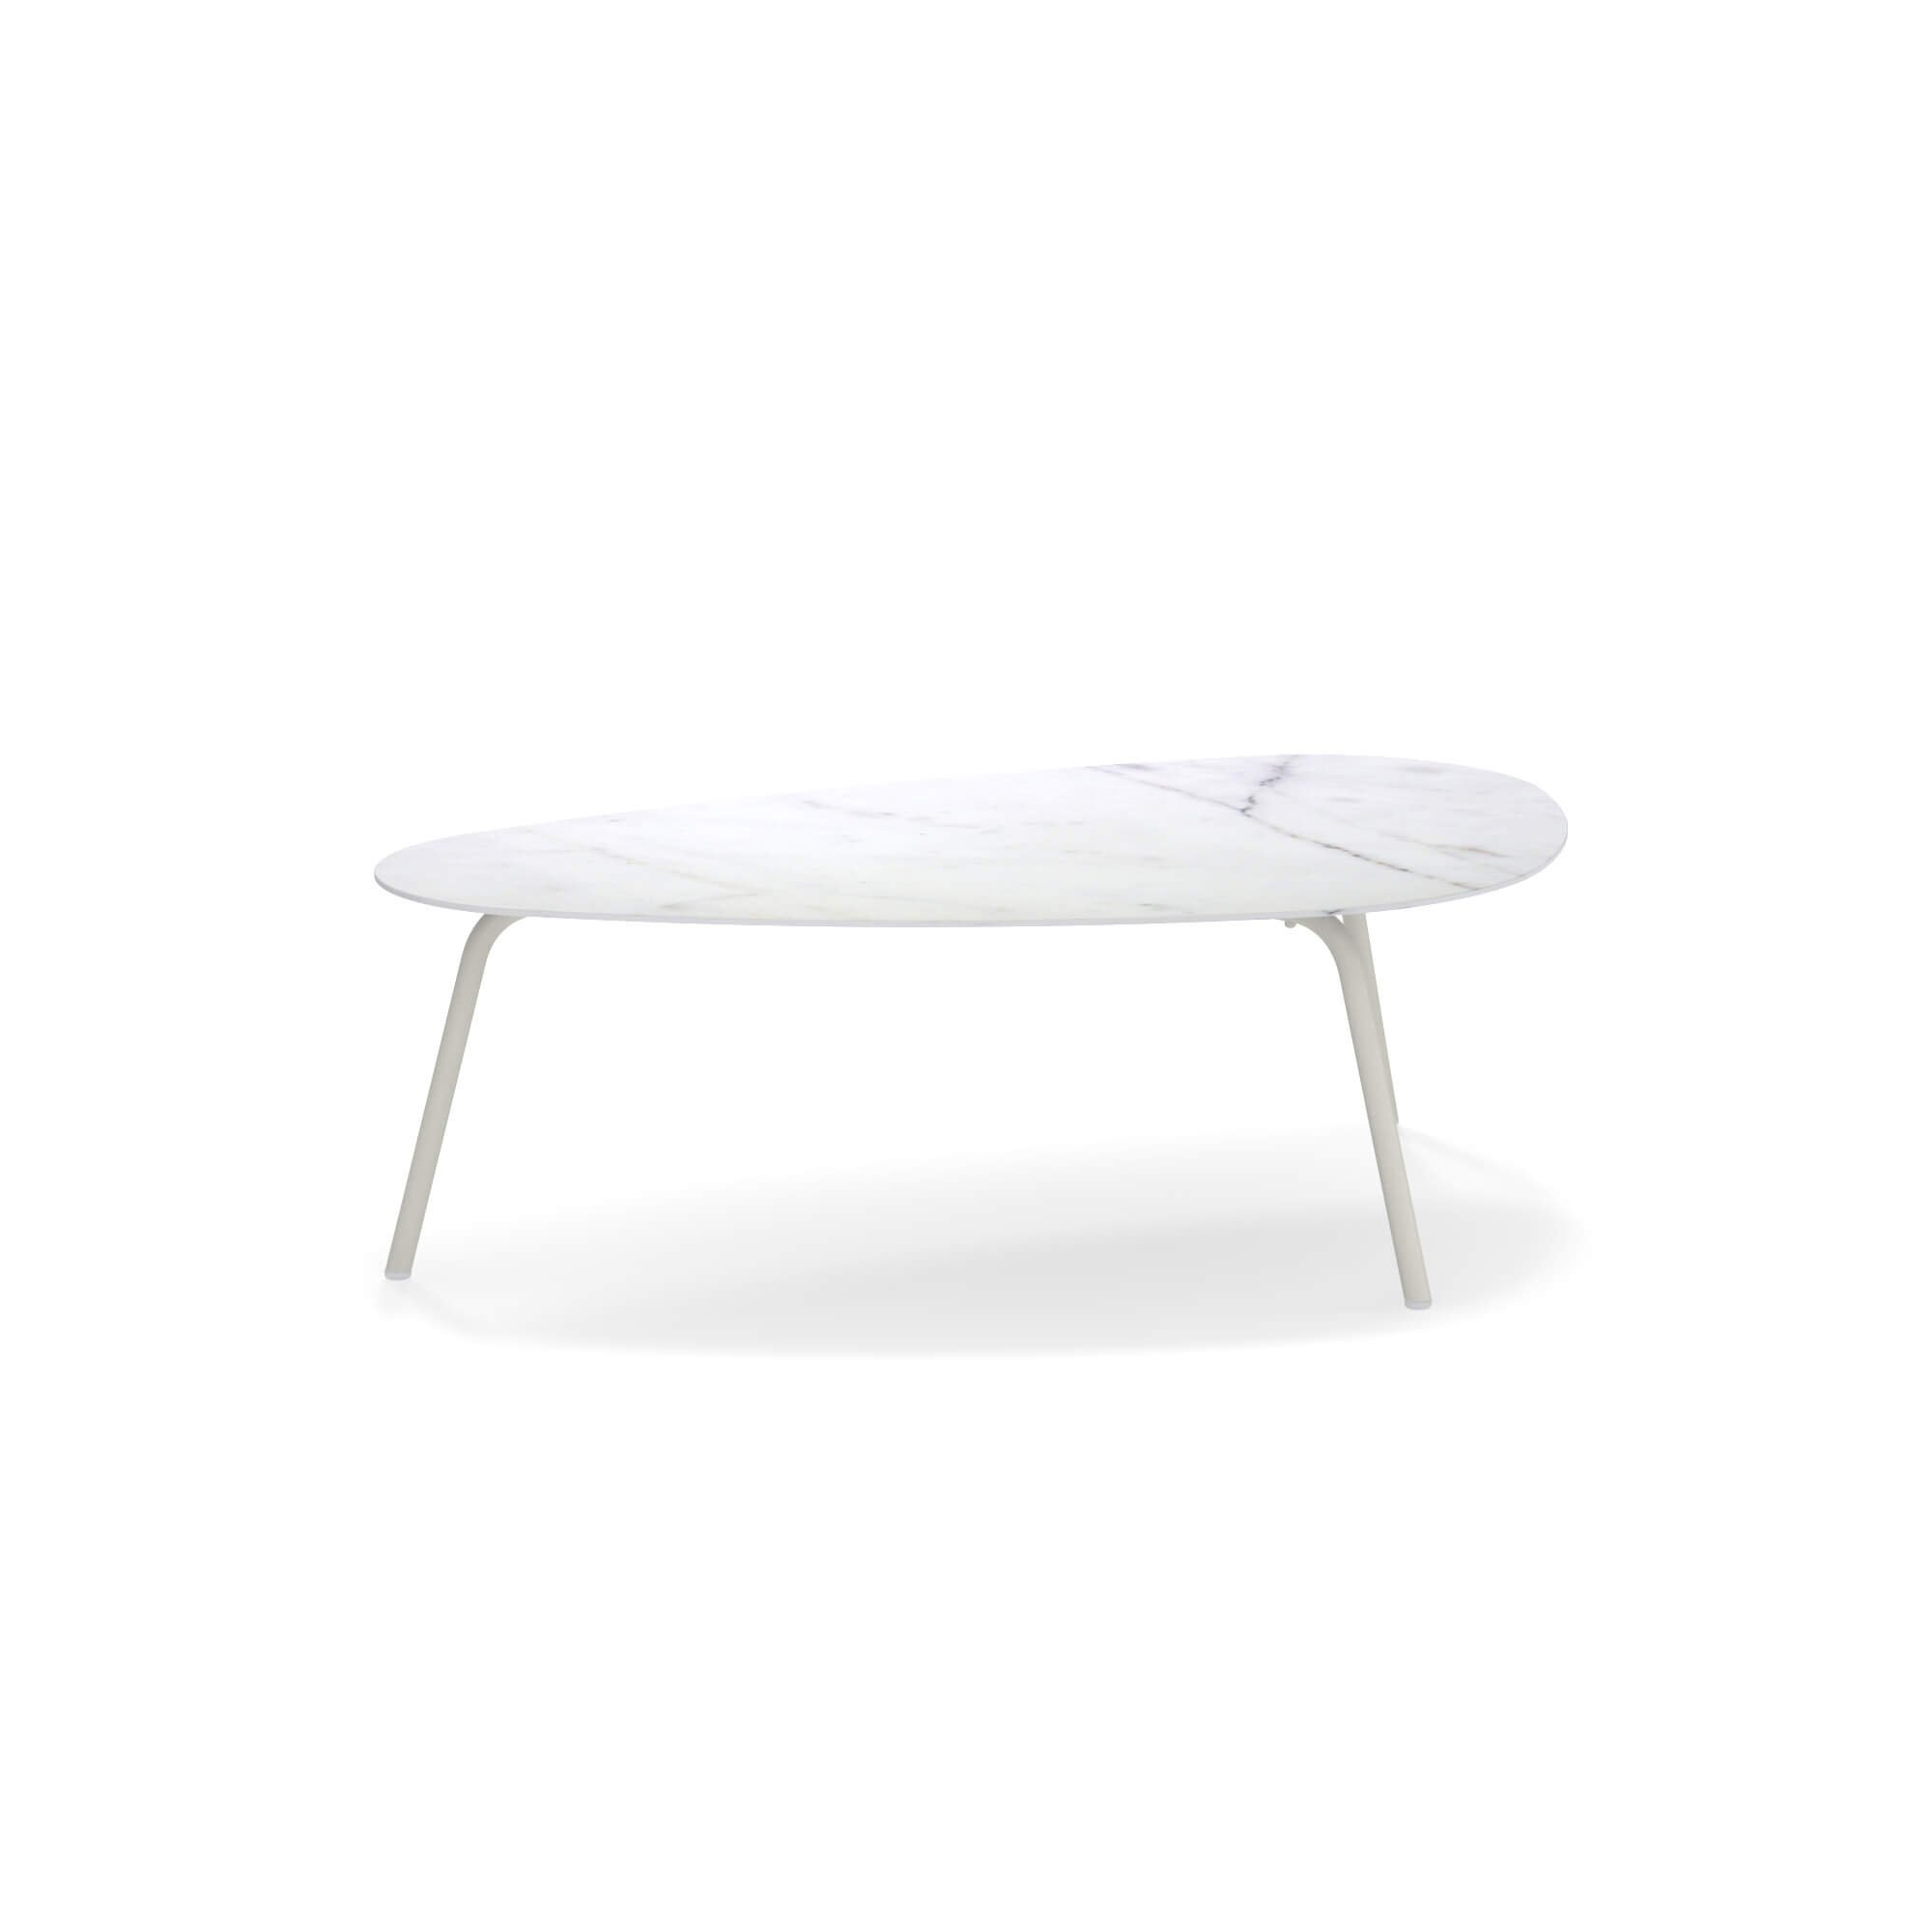 Terramare Coffee Table from Emu, designed by Chiaramonte and Marin